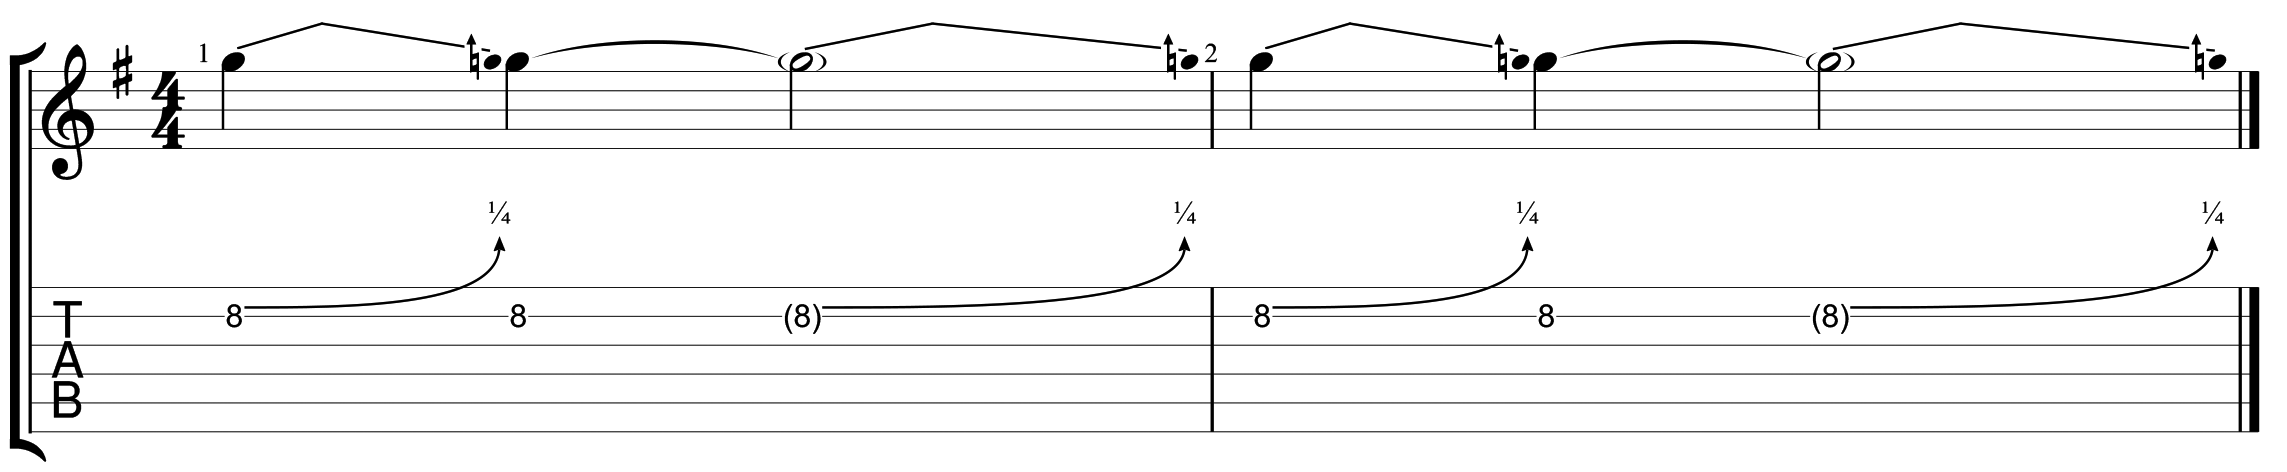 How to read guitar tablature 13